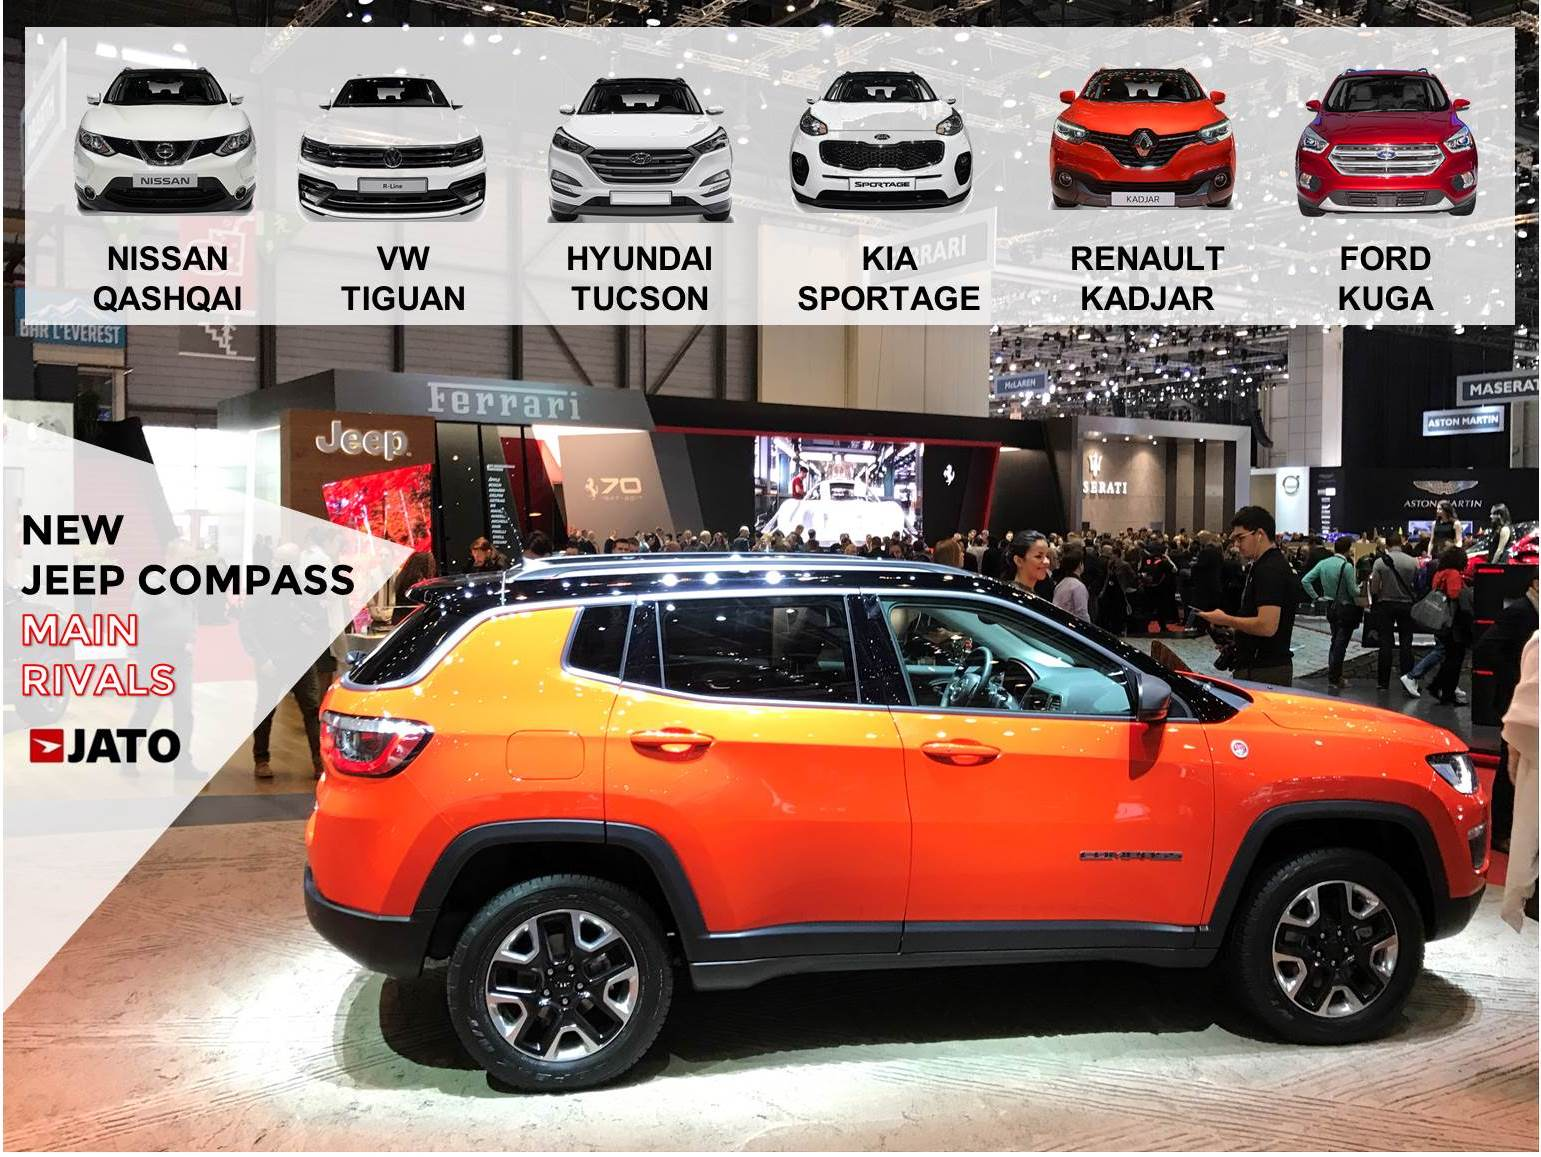 Jeep wants to replicate the success of the Renegade in the compact SUV segment. To do so, the new Compass will hit European dealers soon. Despite its ambitions, this cars faces strong competition that won't allow it to shine as its little brother. In contrast to the good perspective in USA, China and Brazil, the Compass is not expected to post big numbers in Europe.